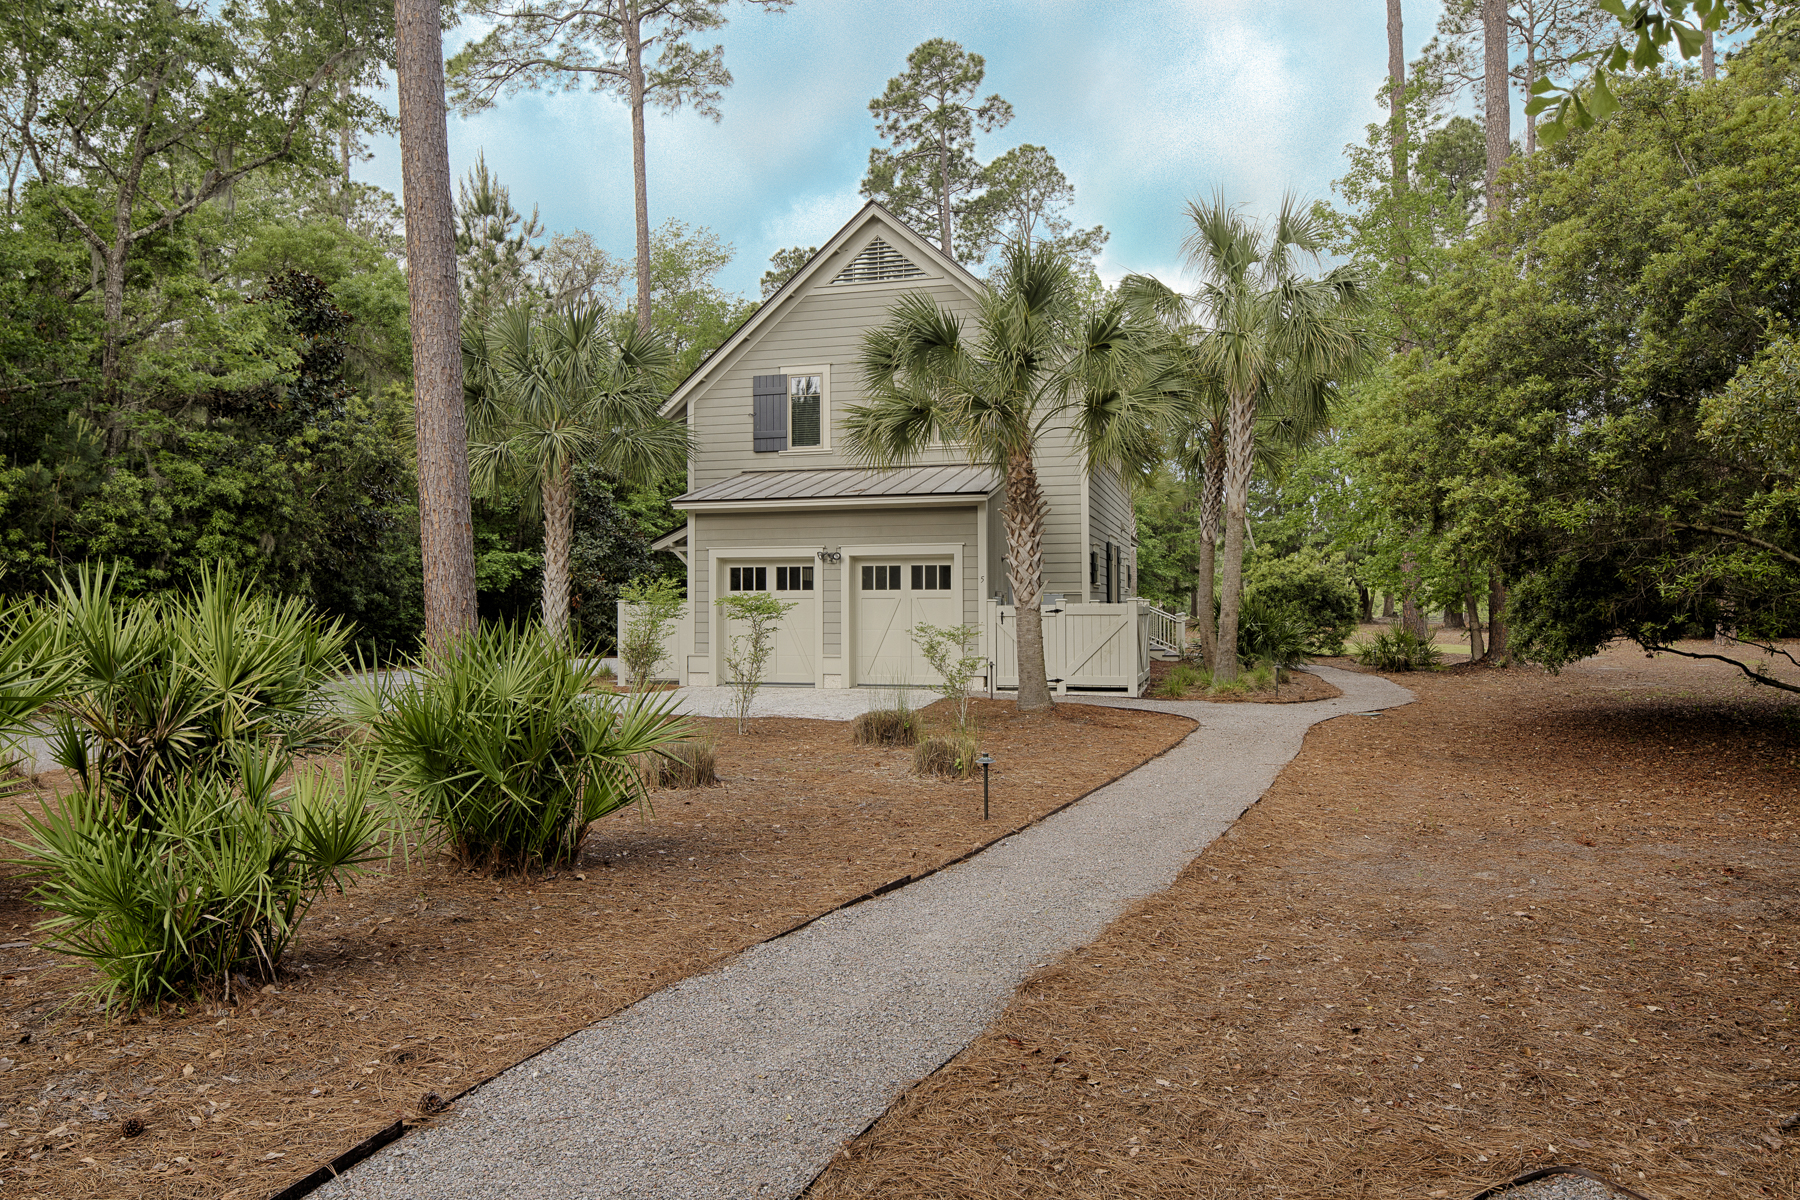 Single Family Home for Sale at 5 Plum Thicket 5 Plum Thicket Road Palmetto Bluff, Bluffton, South Carolina, 29910 United States